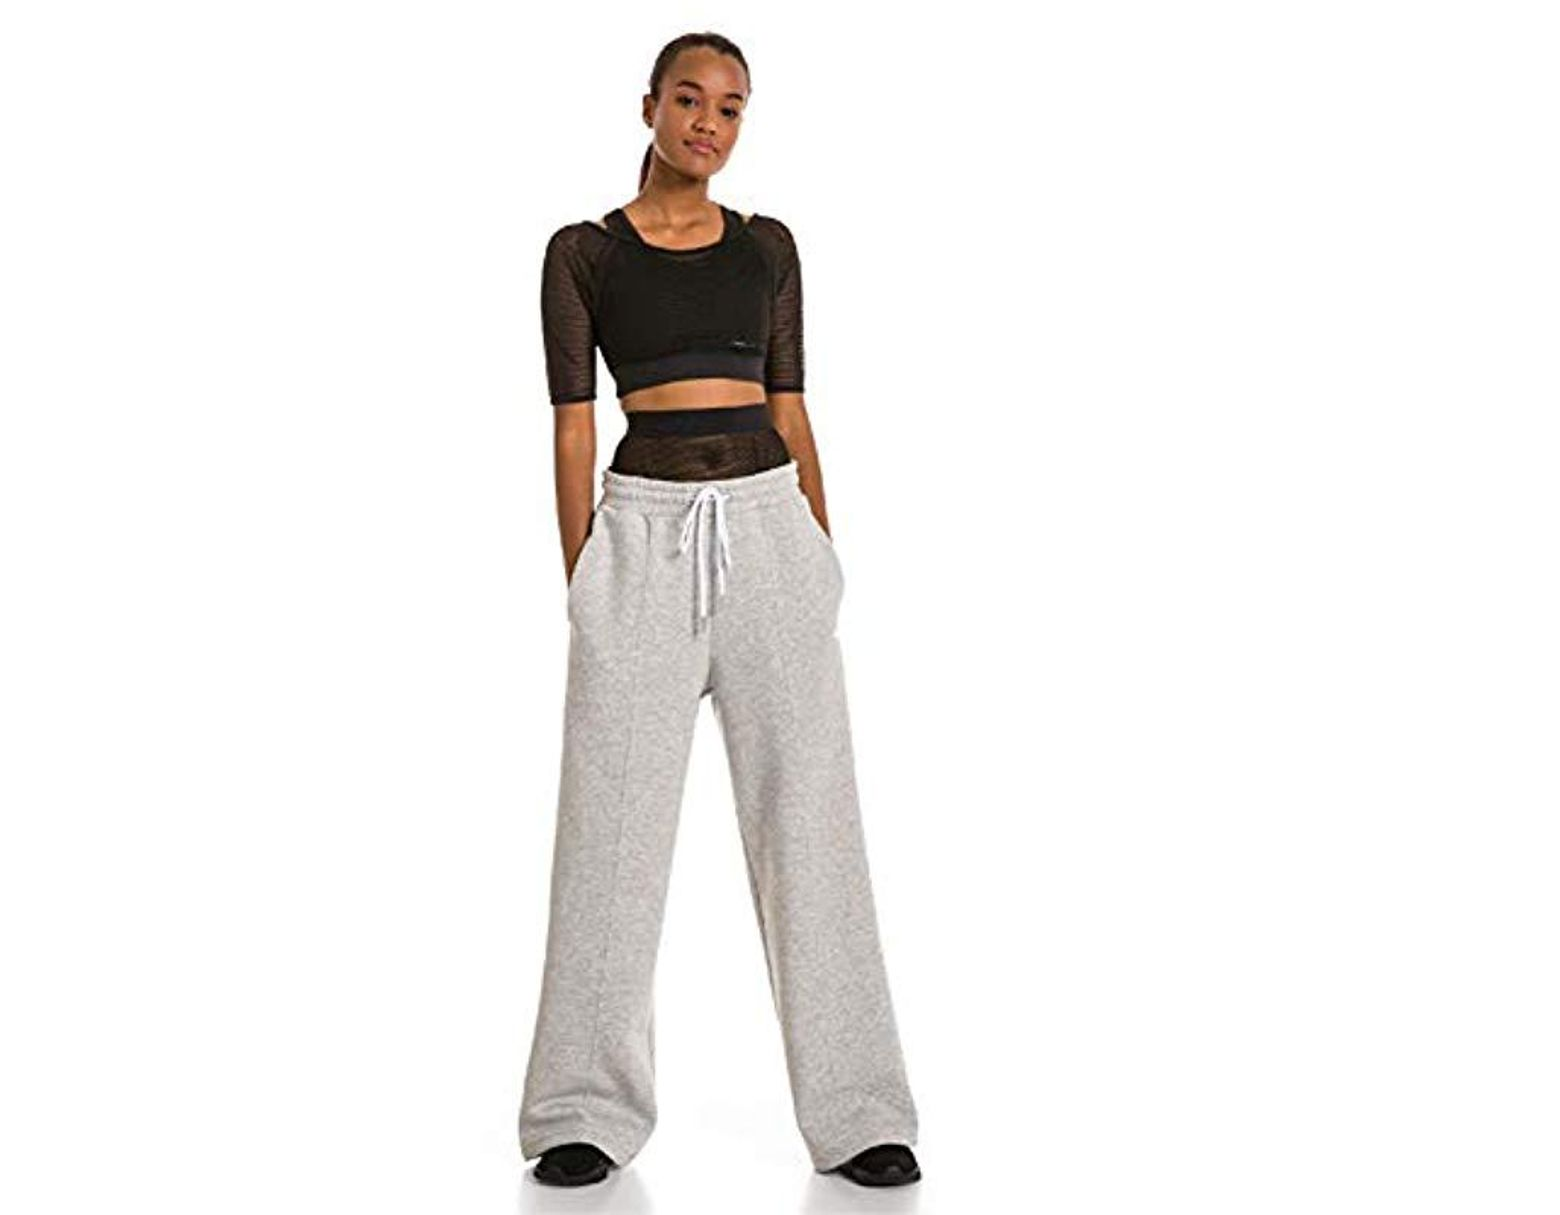 e58e47fa62c17 Women's Gray X Selena Gomez Sweatpants